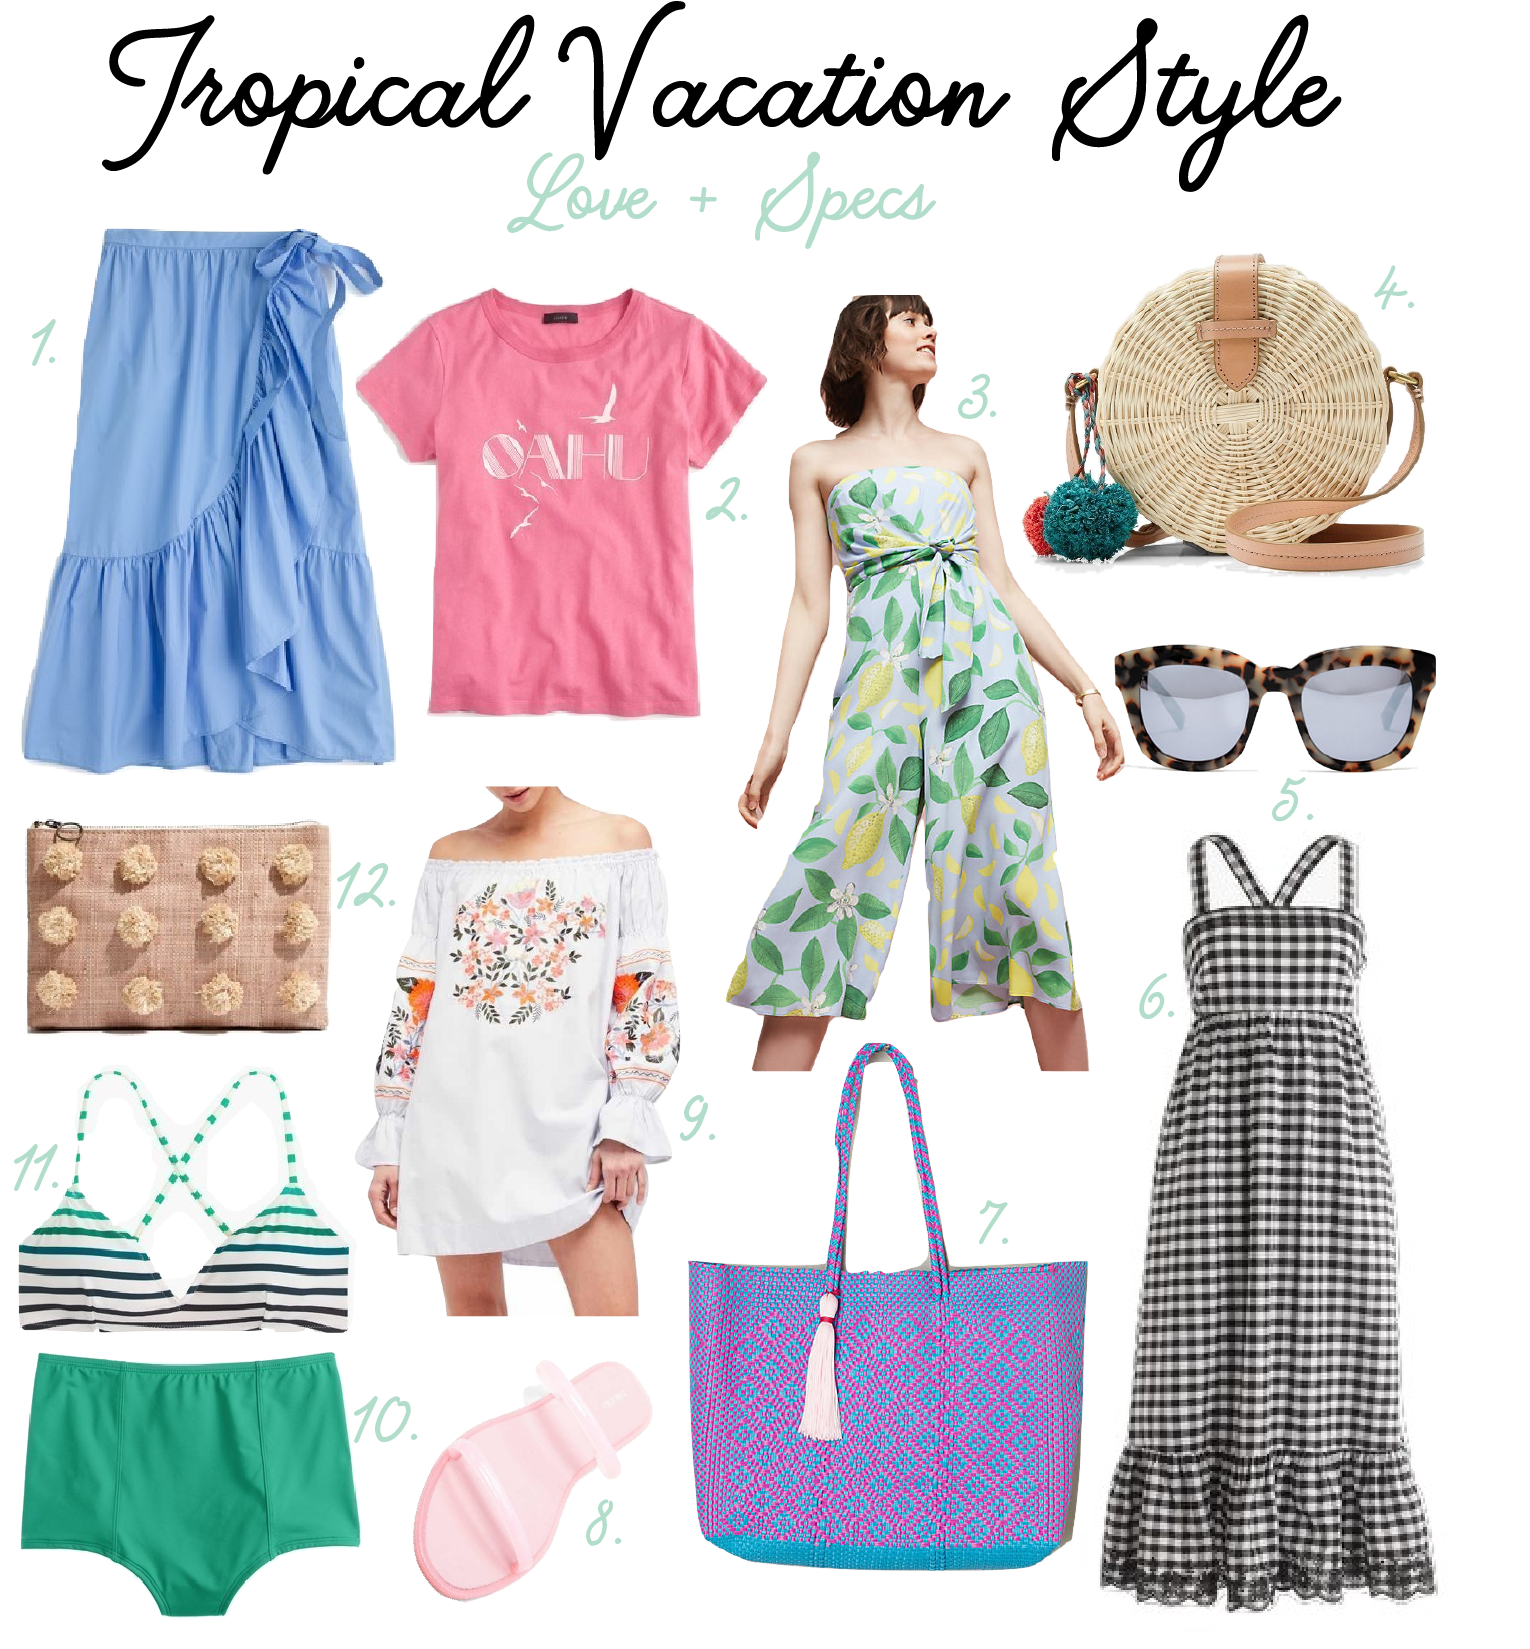 Tropical Vacation Dress